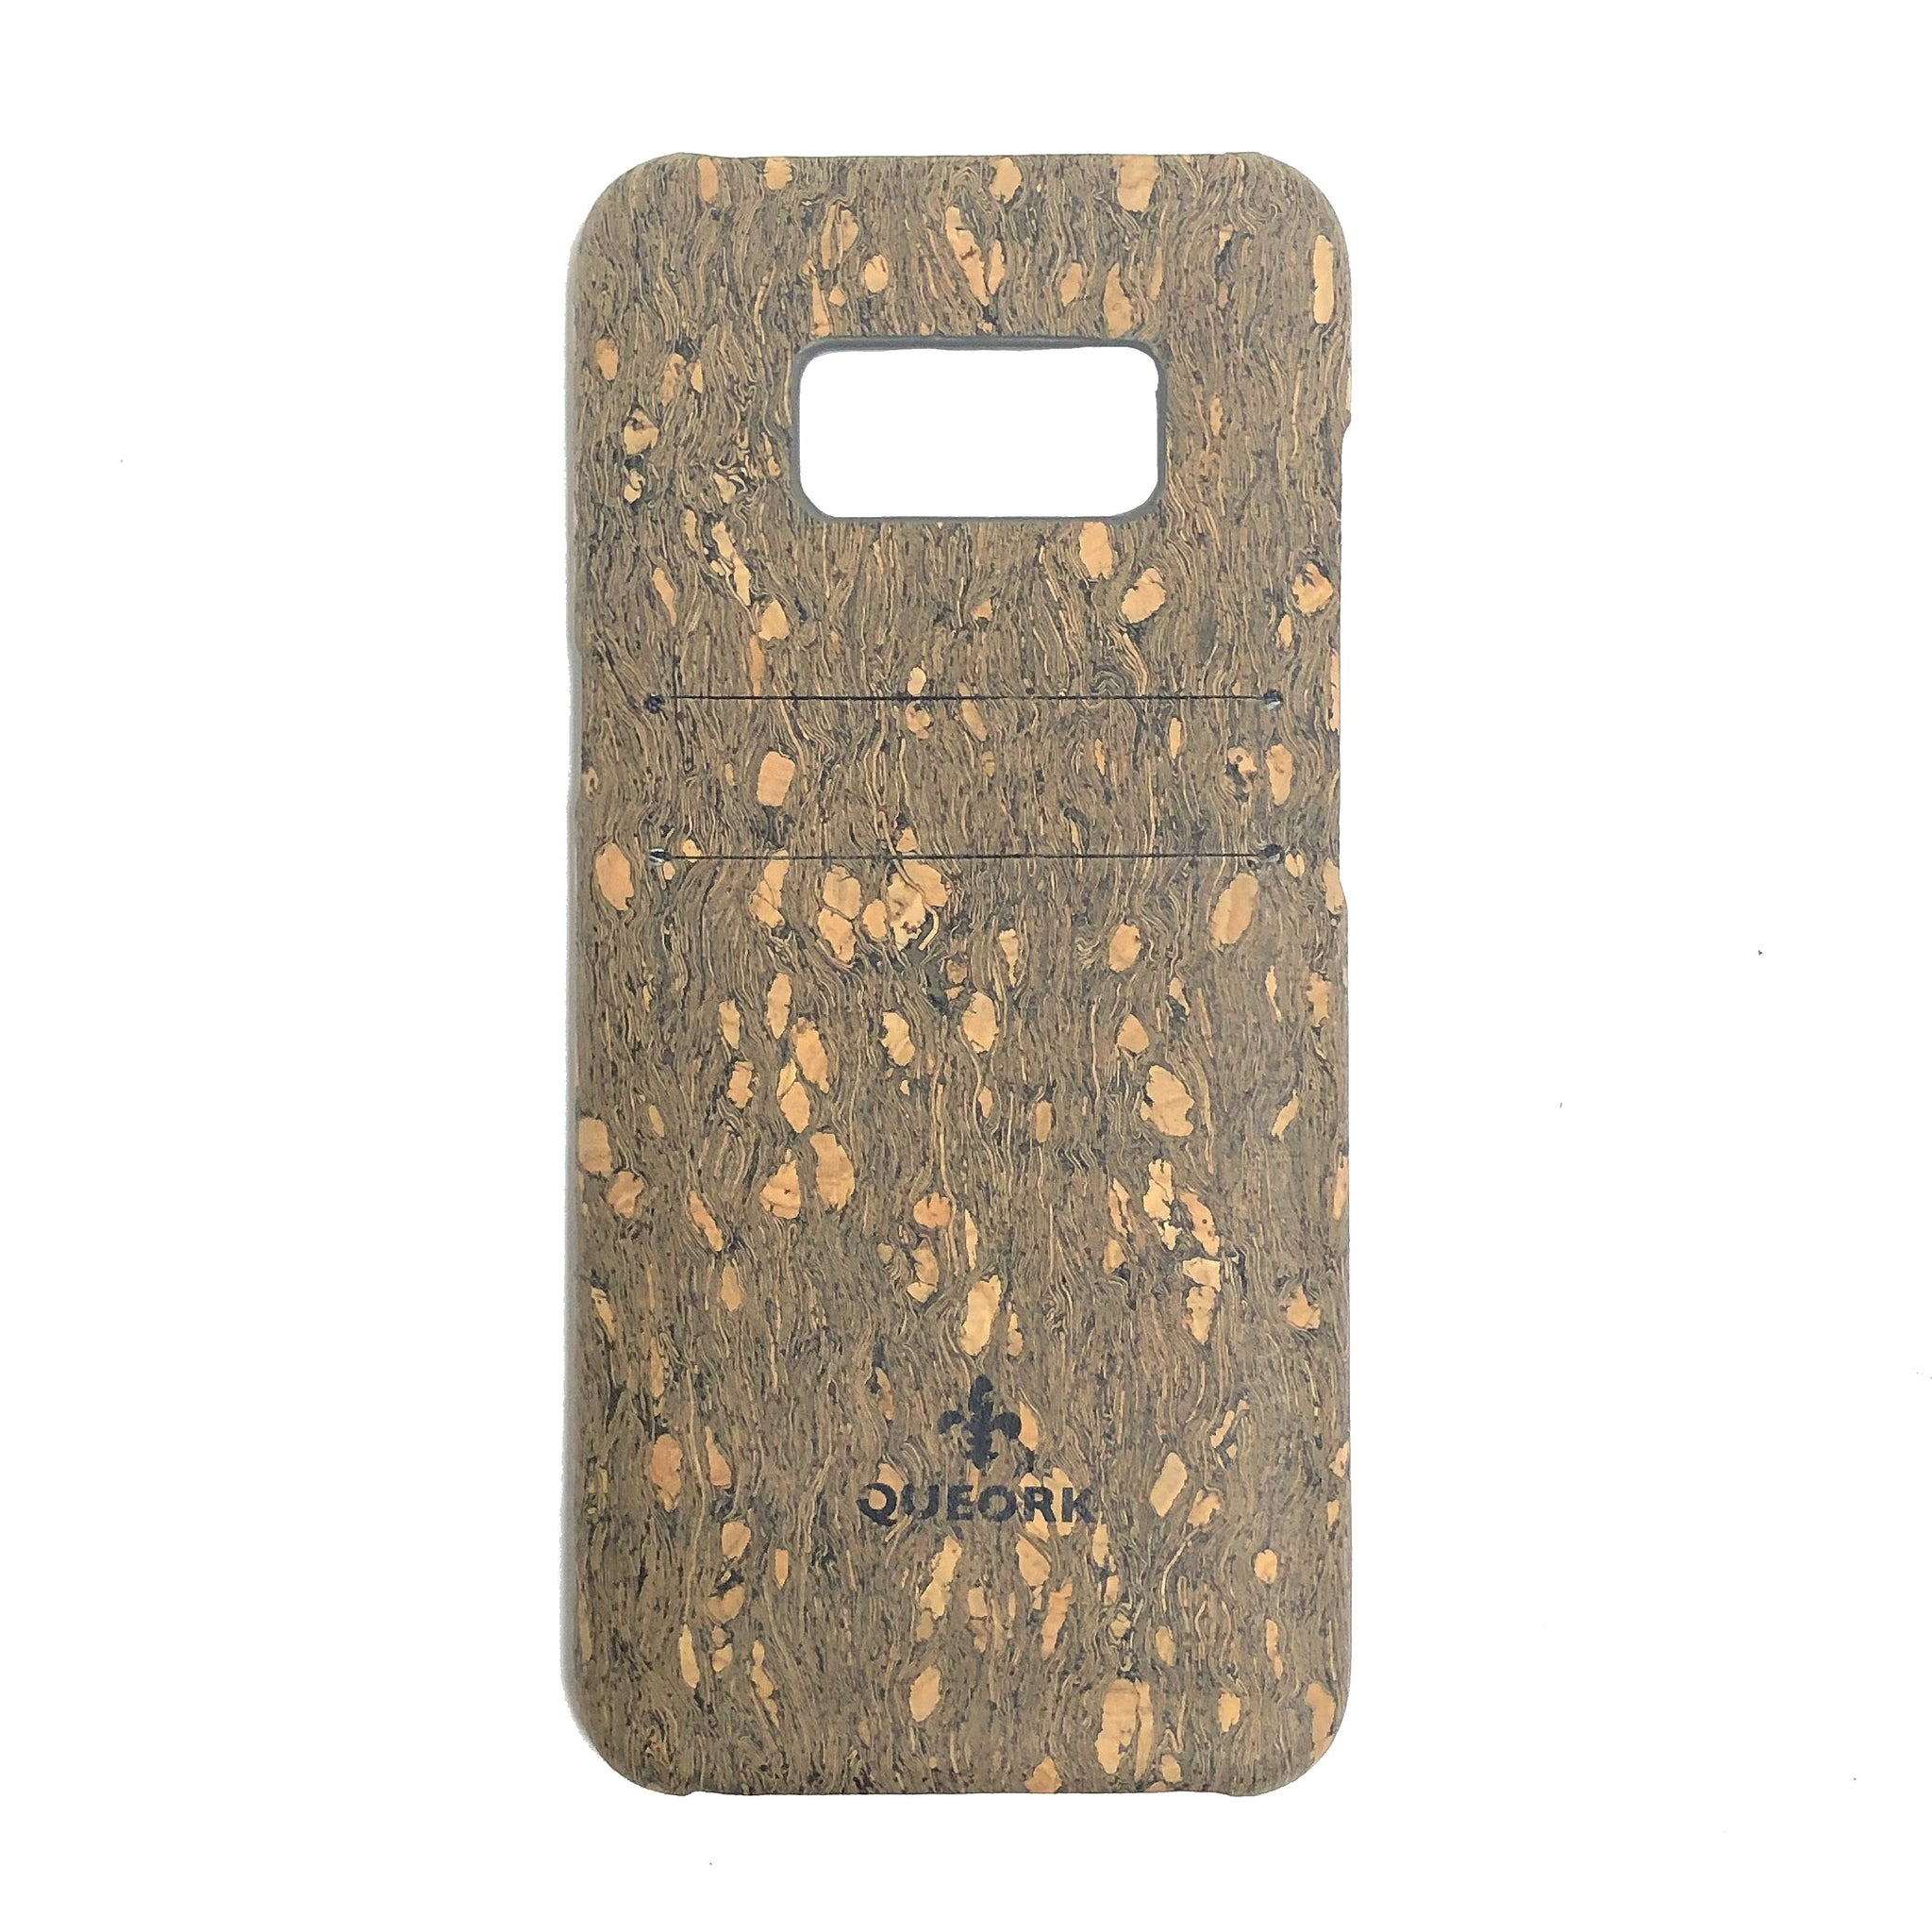 queork cork samsung phone case chips